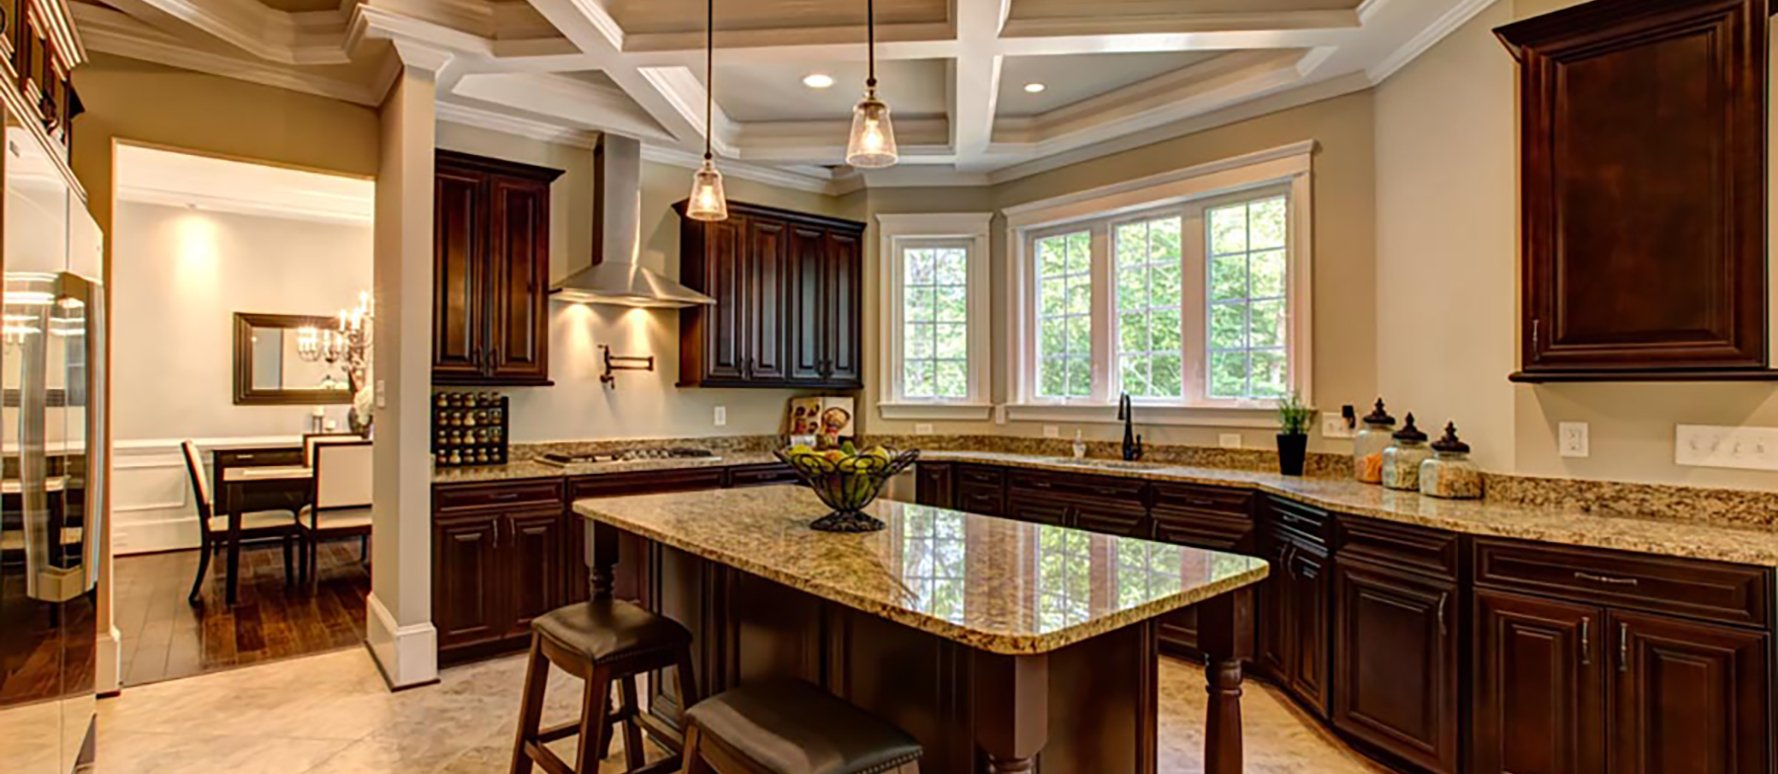 Kitchen Remodeling | Bathroom Remodeling | Home Additions In Virginia